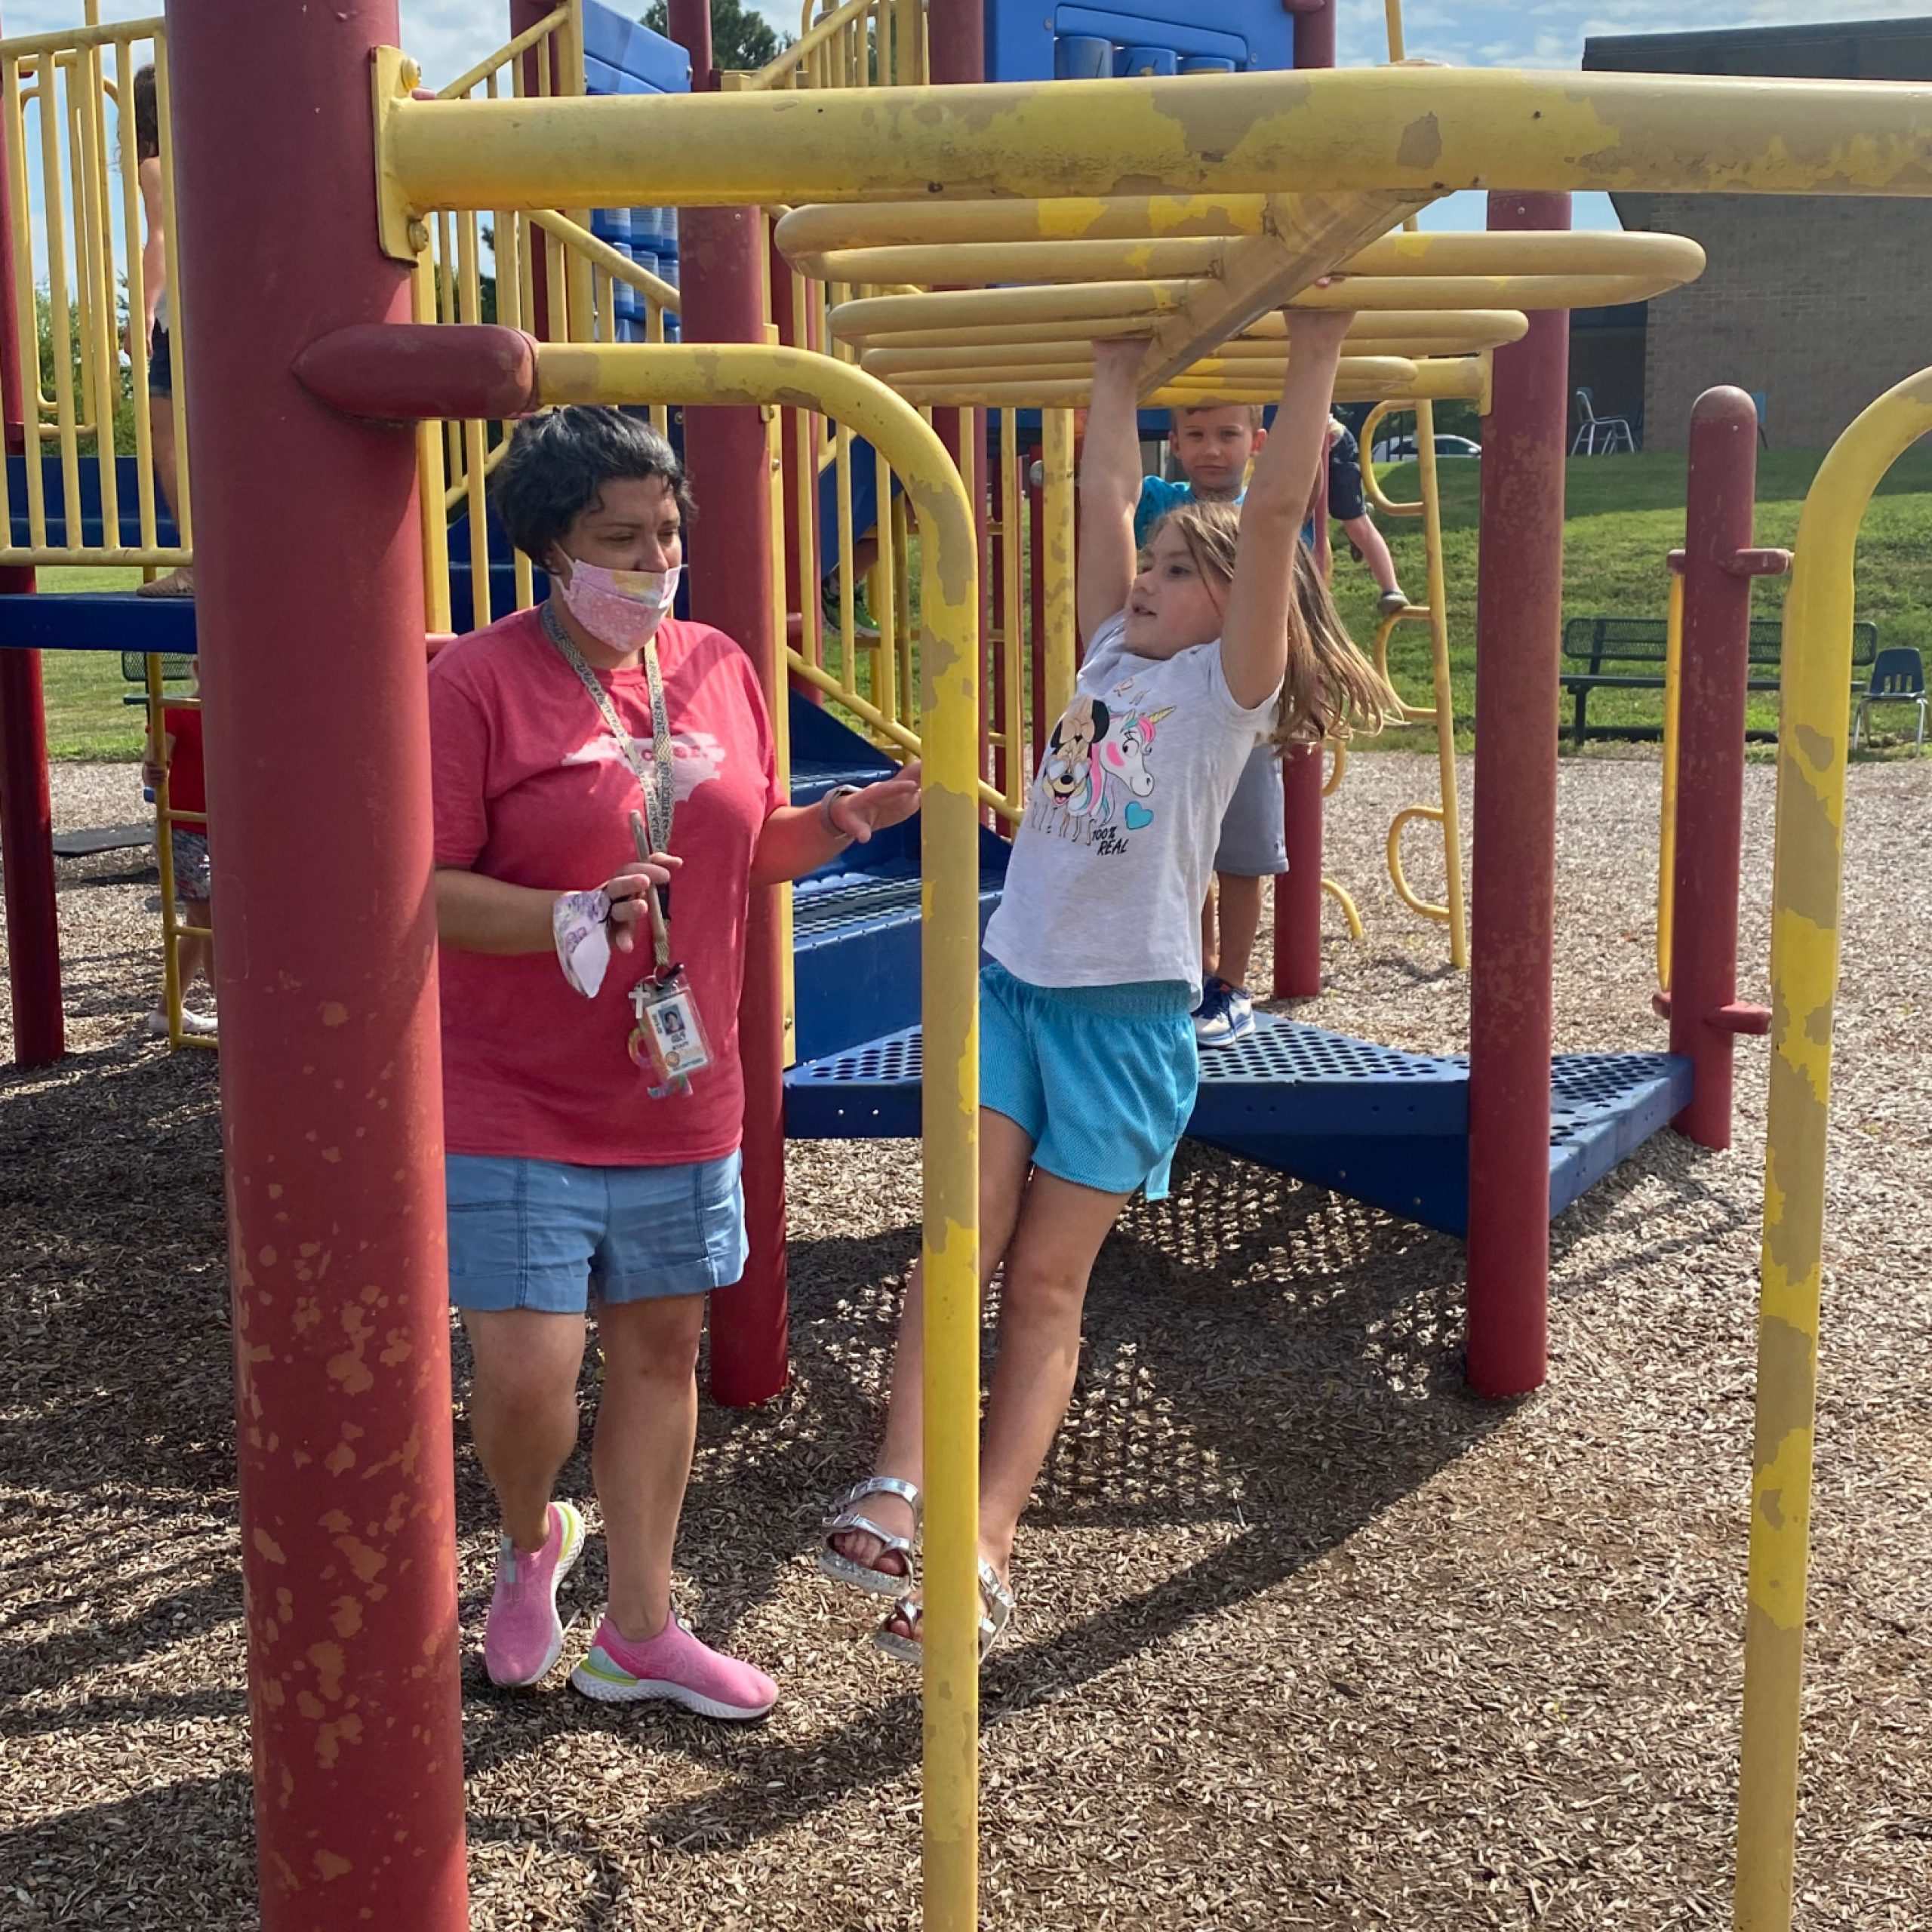 Julie Holt assists Irie Stanbery on the monkey bars during kinder camp at Pinebrook Elementary